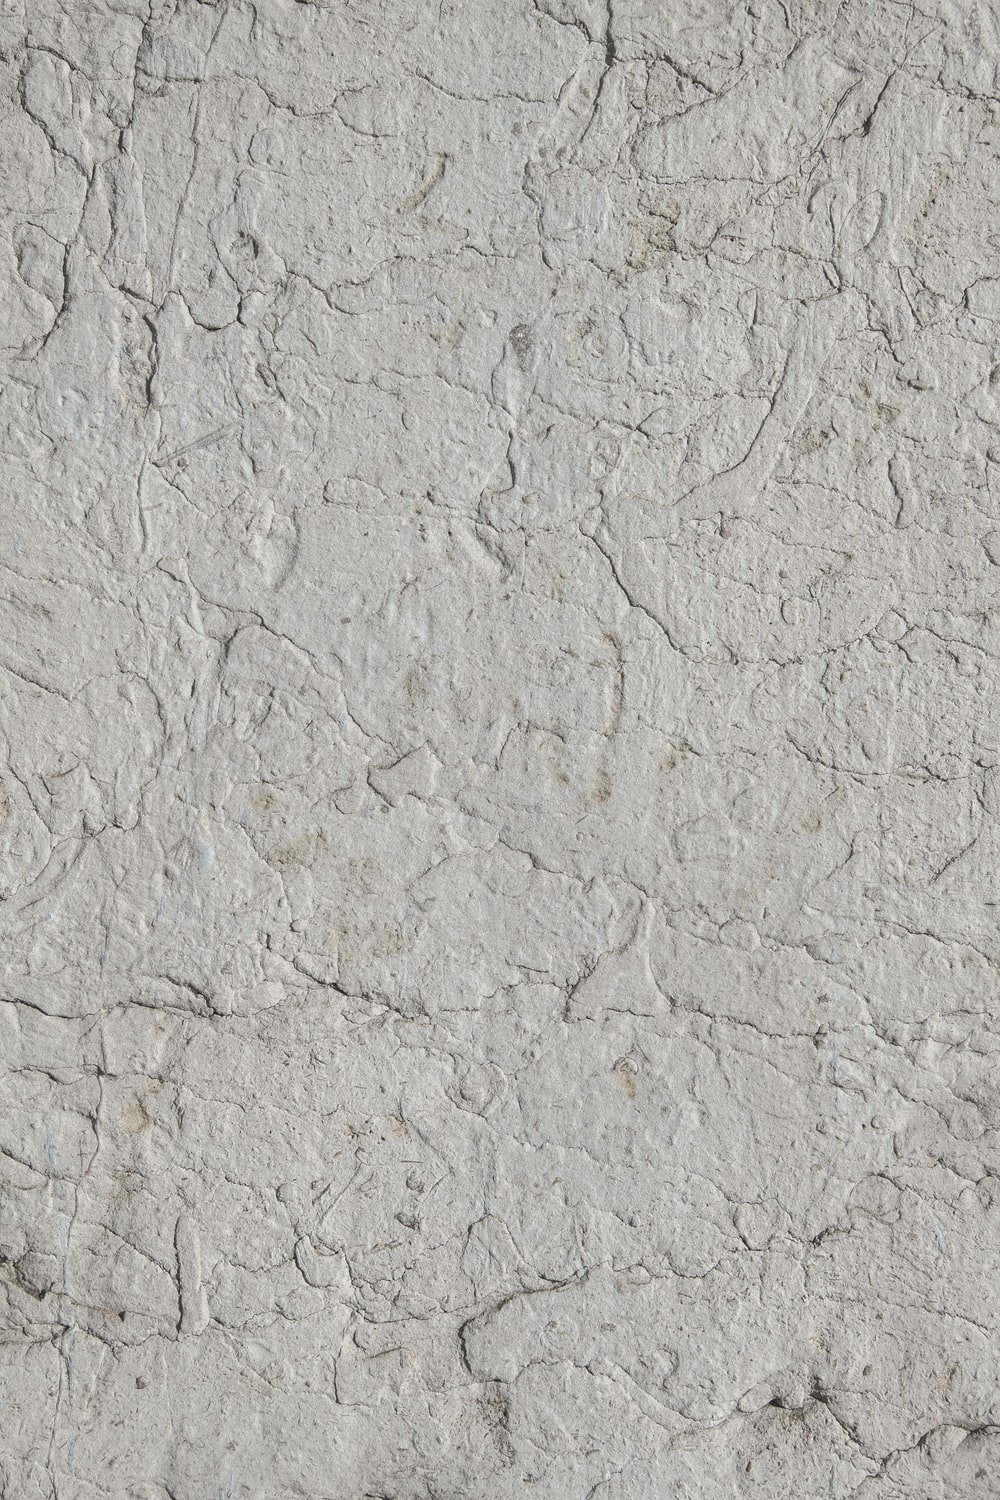 500 Texture Wall Pictures